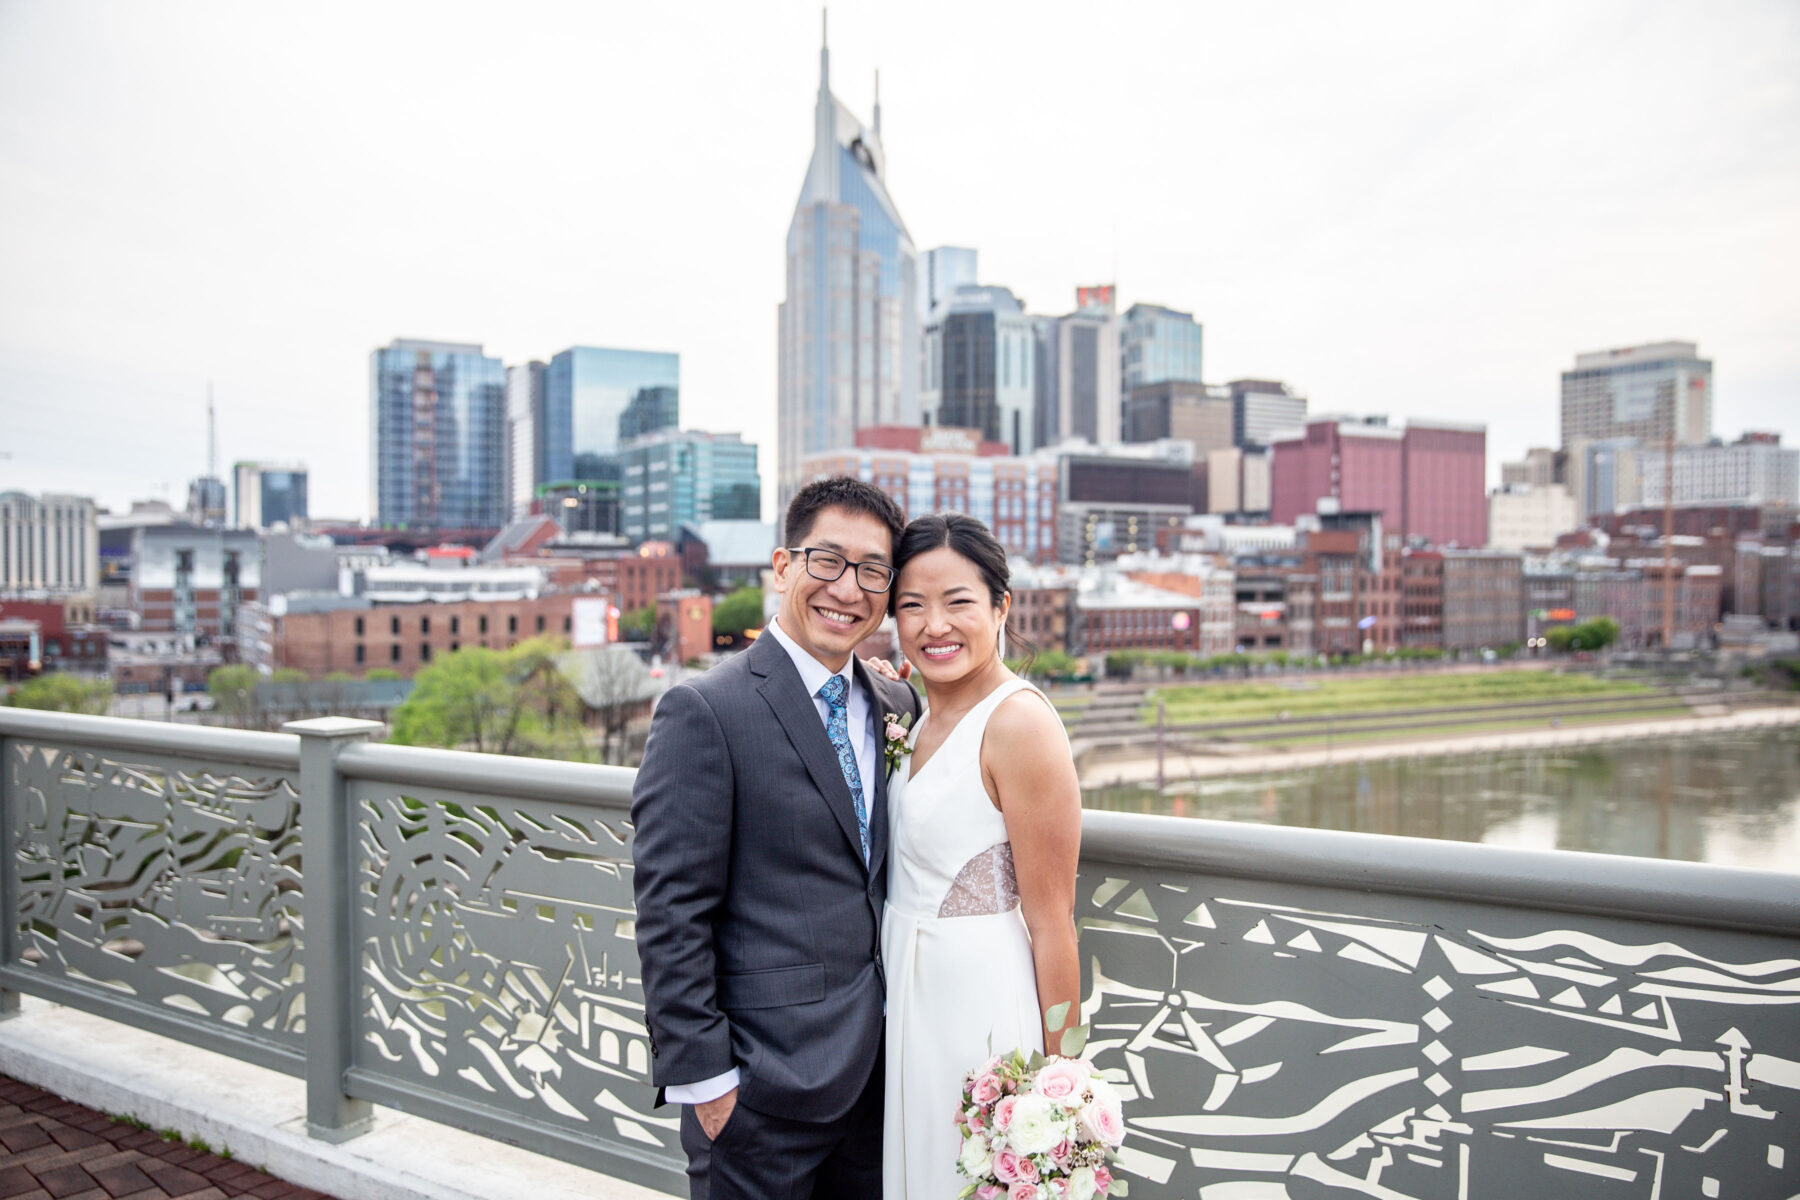 Mindy & Li's Nashville Wedding Story captured by Sara Grace Photography featured on Nashville Bride Guide